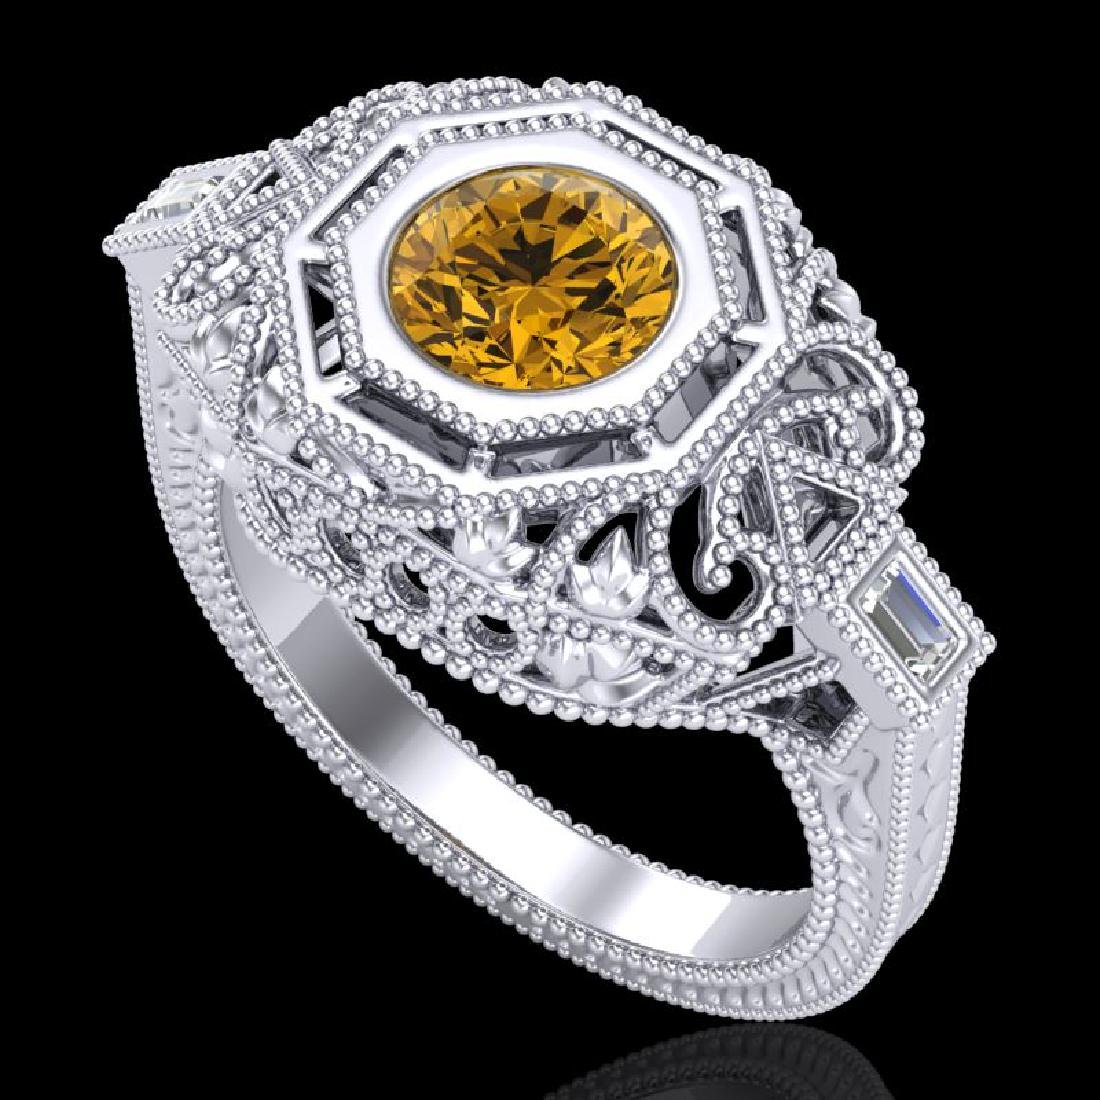 1.13 CTW Intense Fancy Yellow Diamond Engagement Art